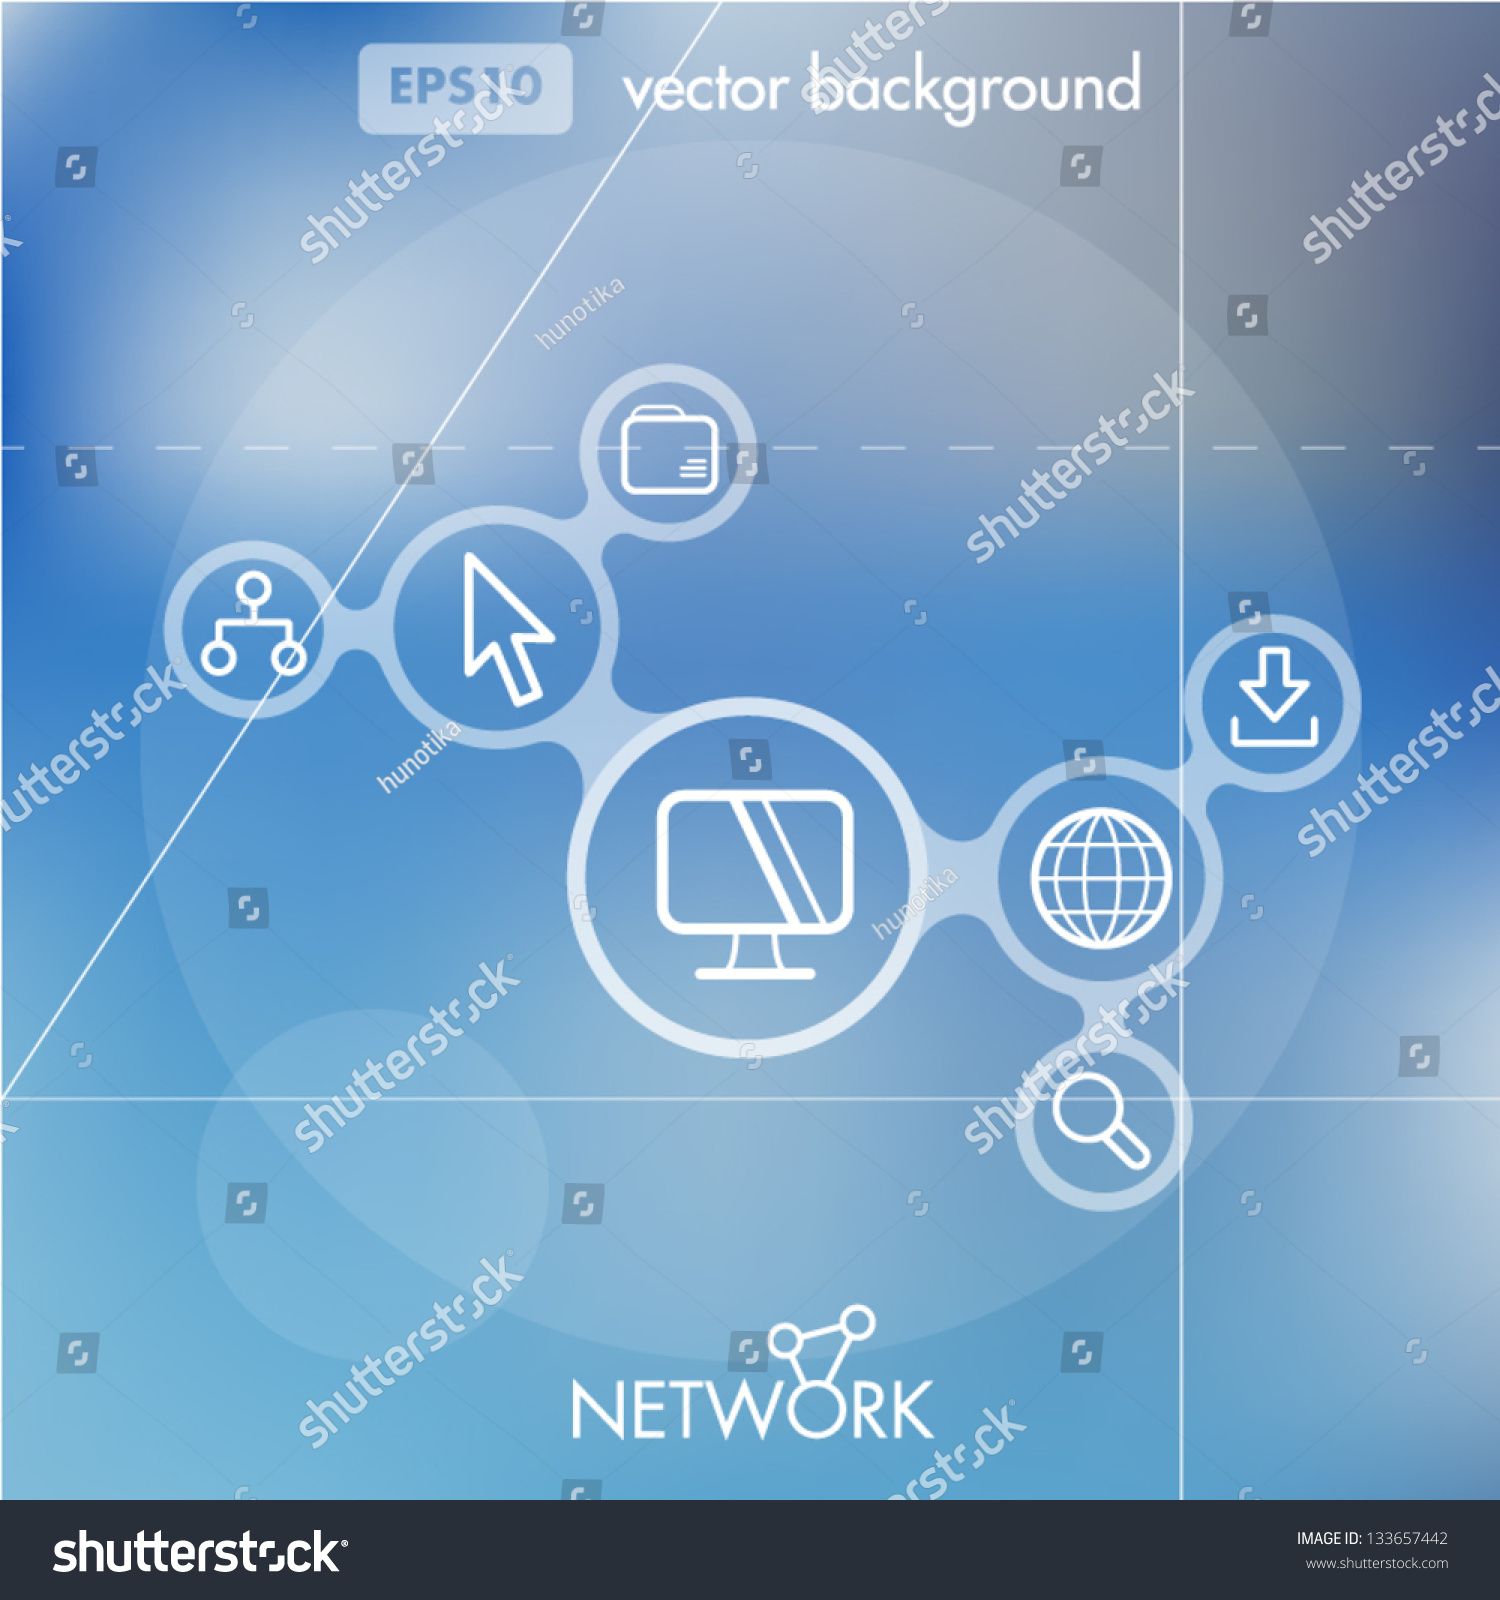 Social Networking Creative Icon Background Concept Stock